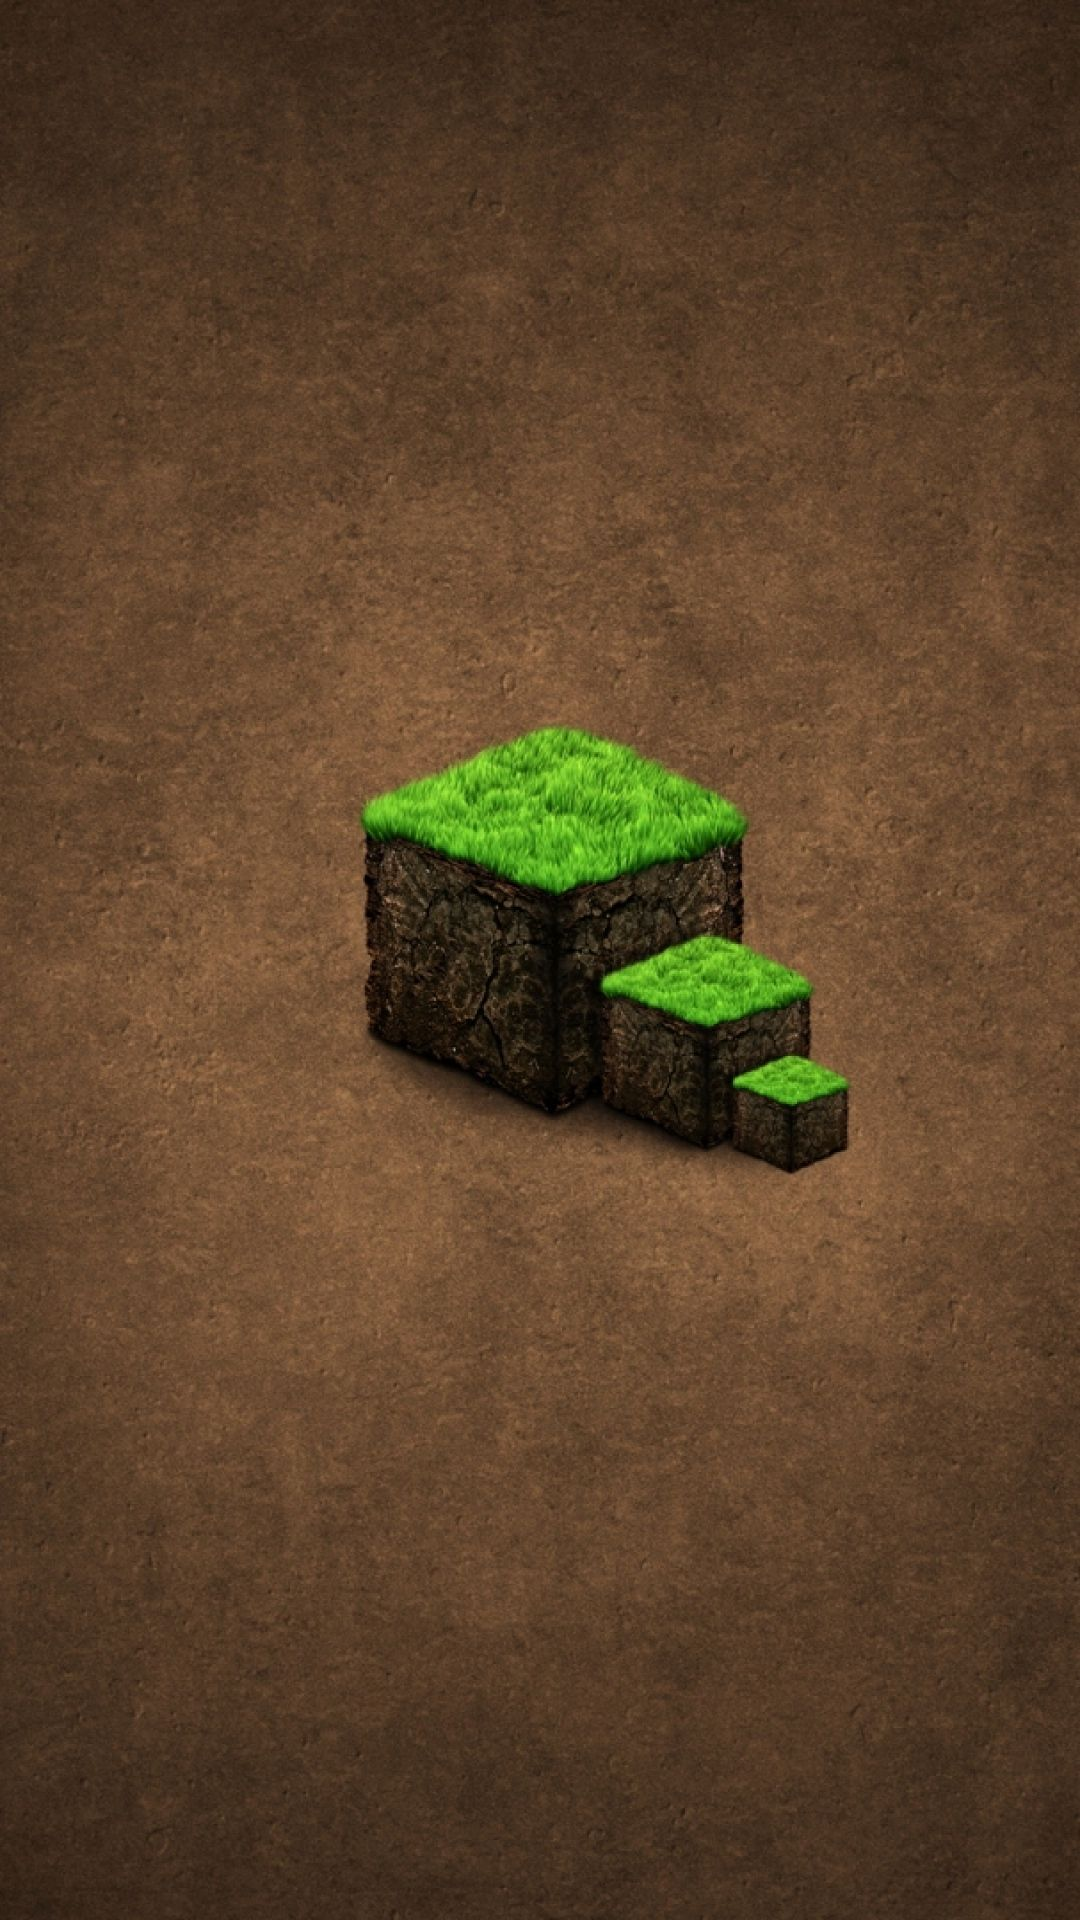 Minecraft Wallpapers High Quality » Hupages » Download